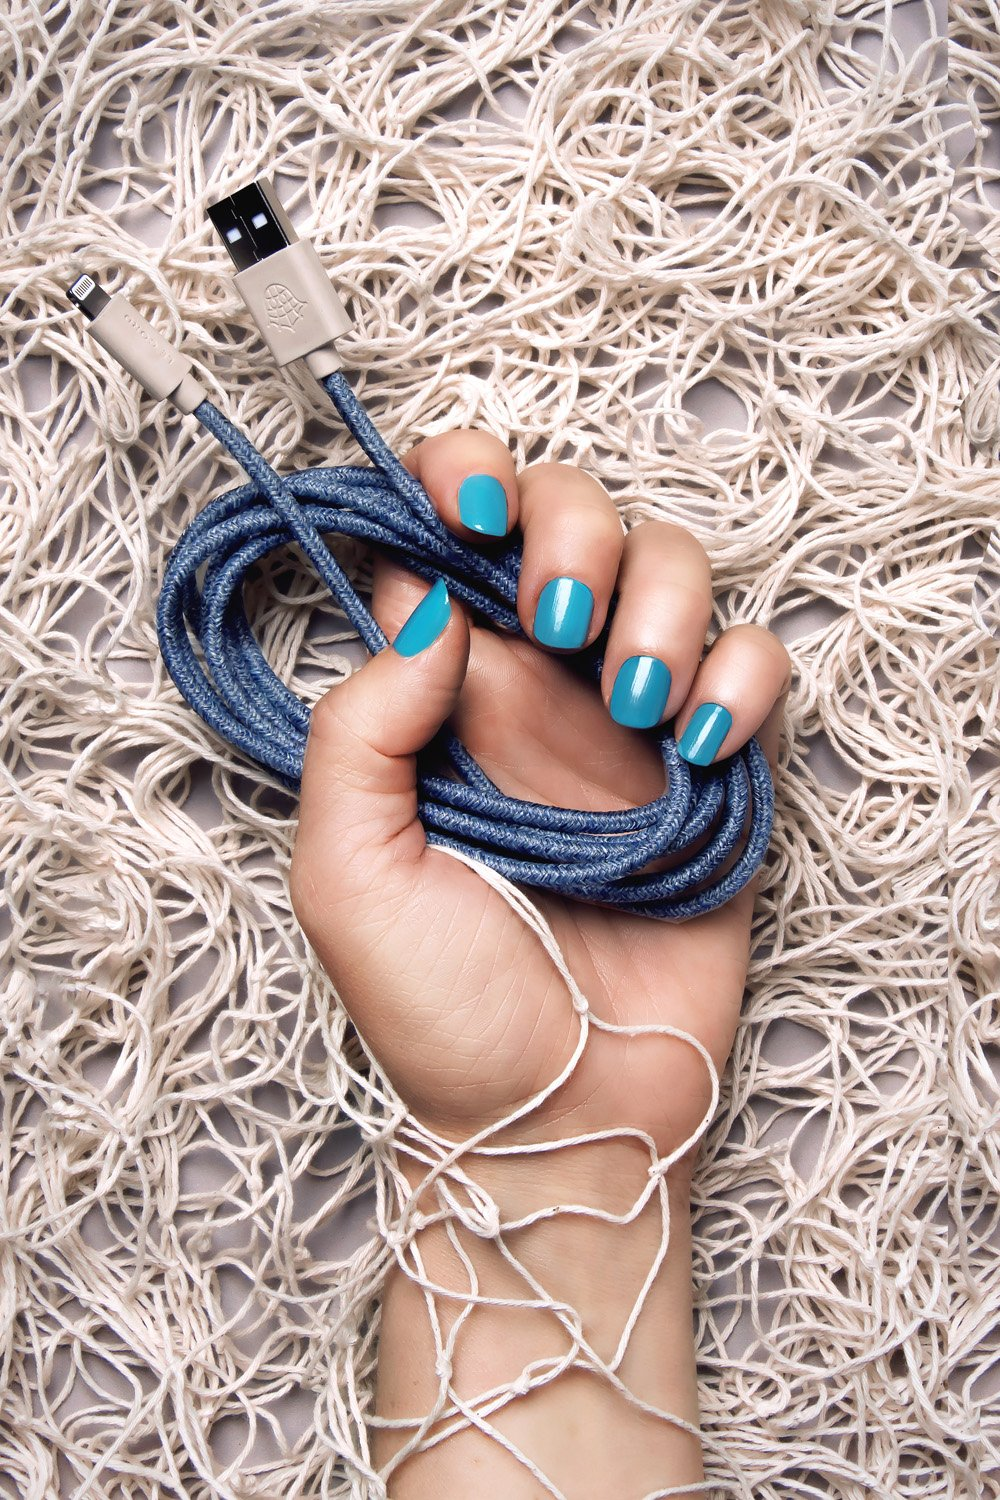 2 Meter - iPhone Lightning cable - Made from recycled fishing nets